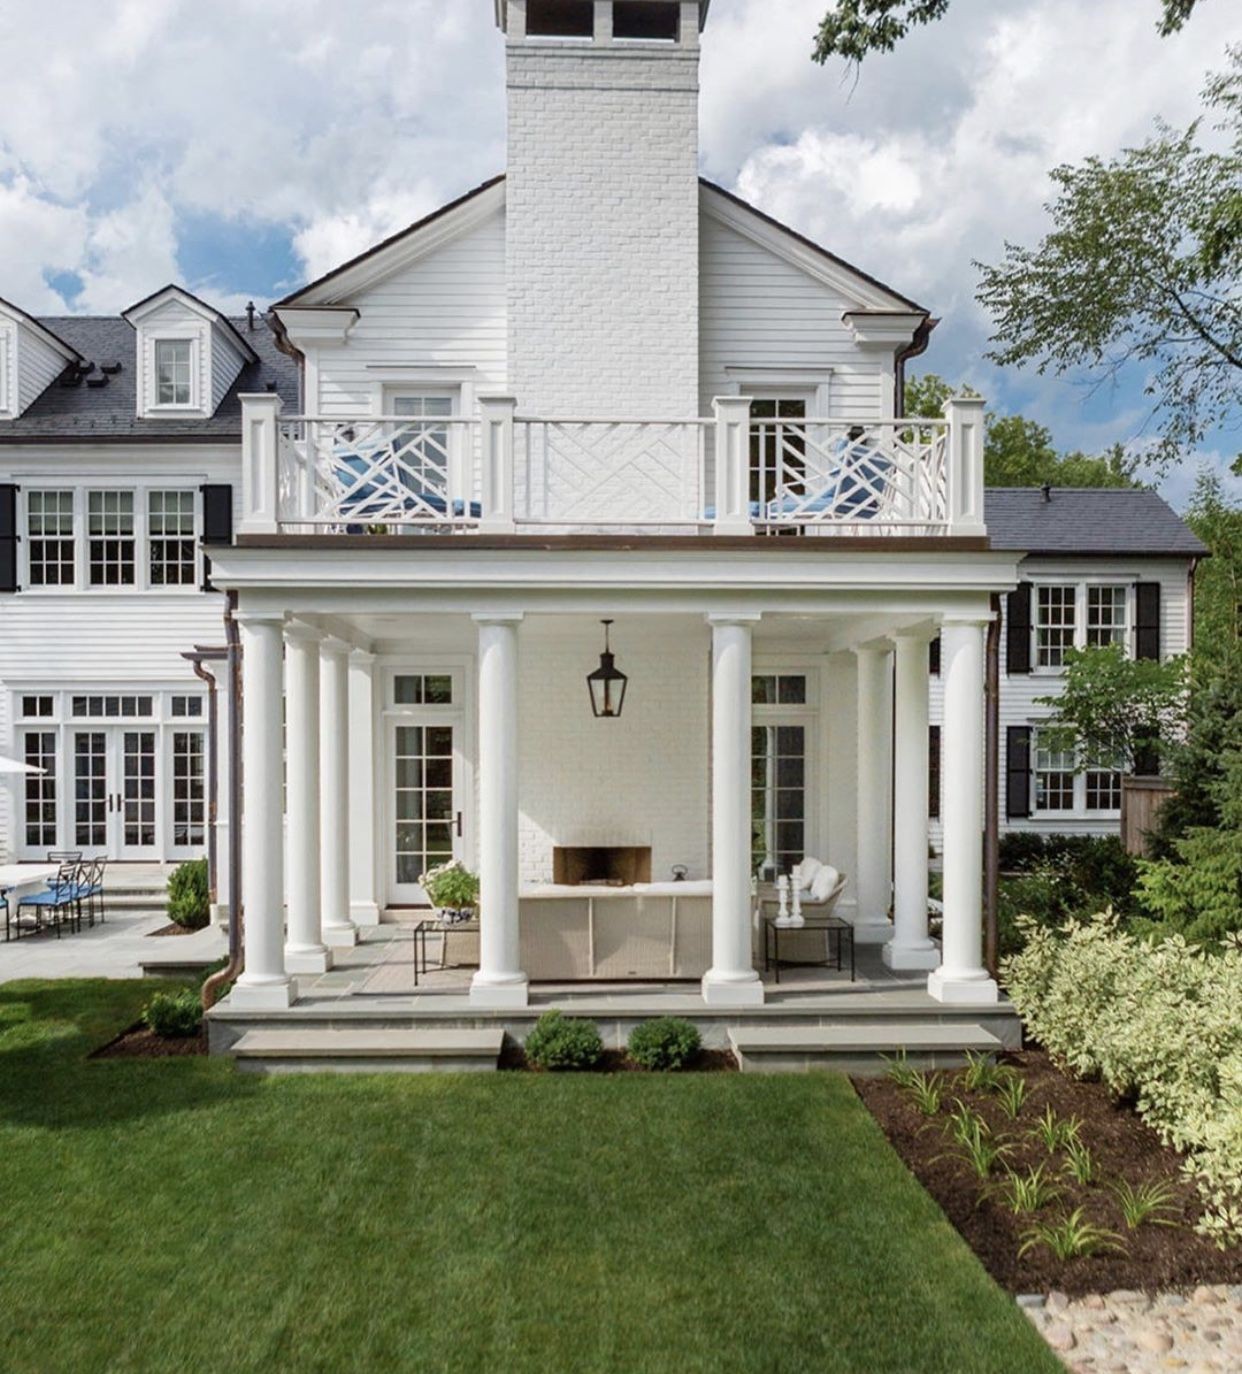 Colonial Home Design Ideas: Pin By Angela Grant On HOUSE IDEAS In 2020